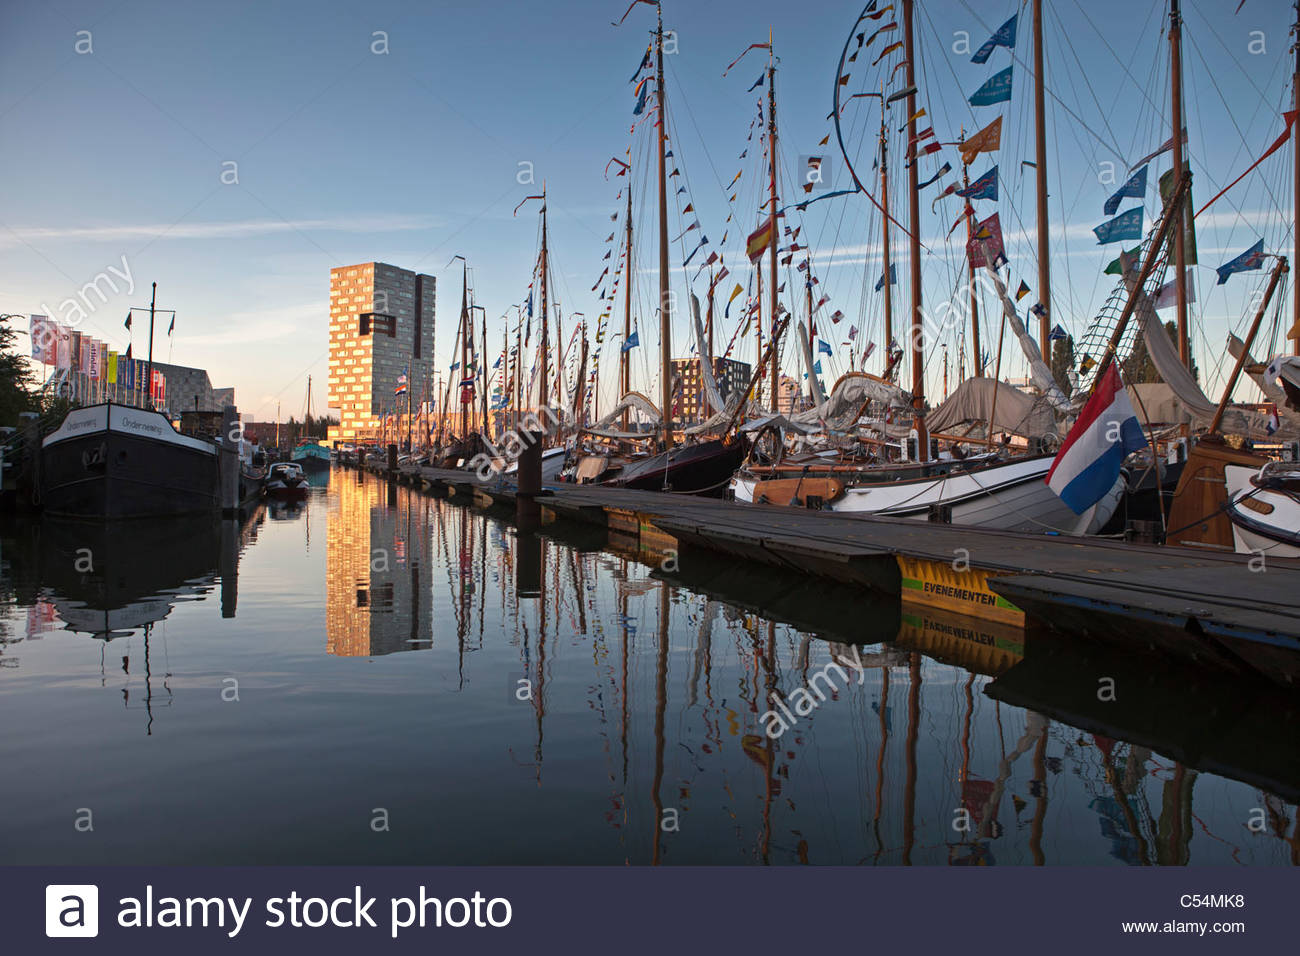 The Netherlands, Amsterdam, sailing event SAIL, celebrated every 5 years. SAIL-2010. Sailing ships moored in harbour. - Stock Image